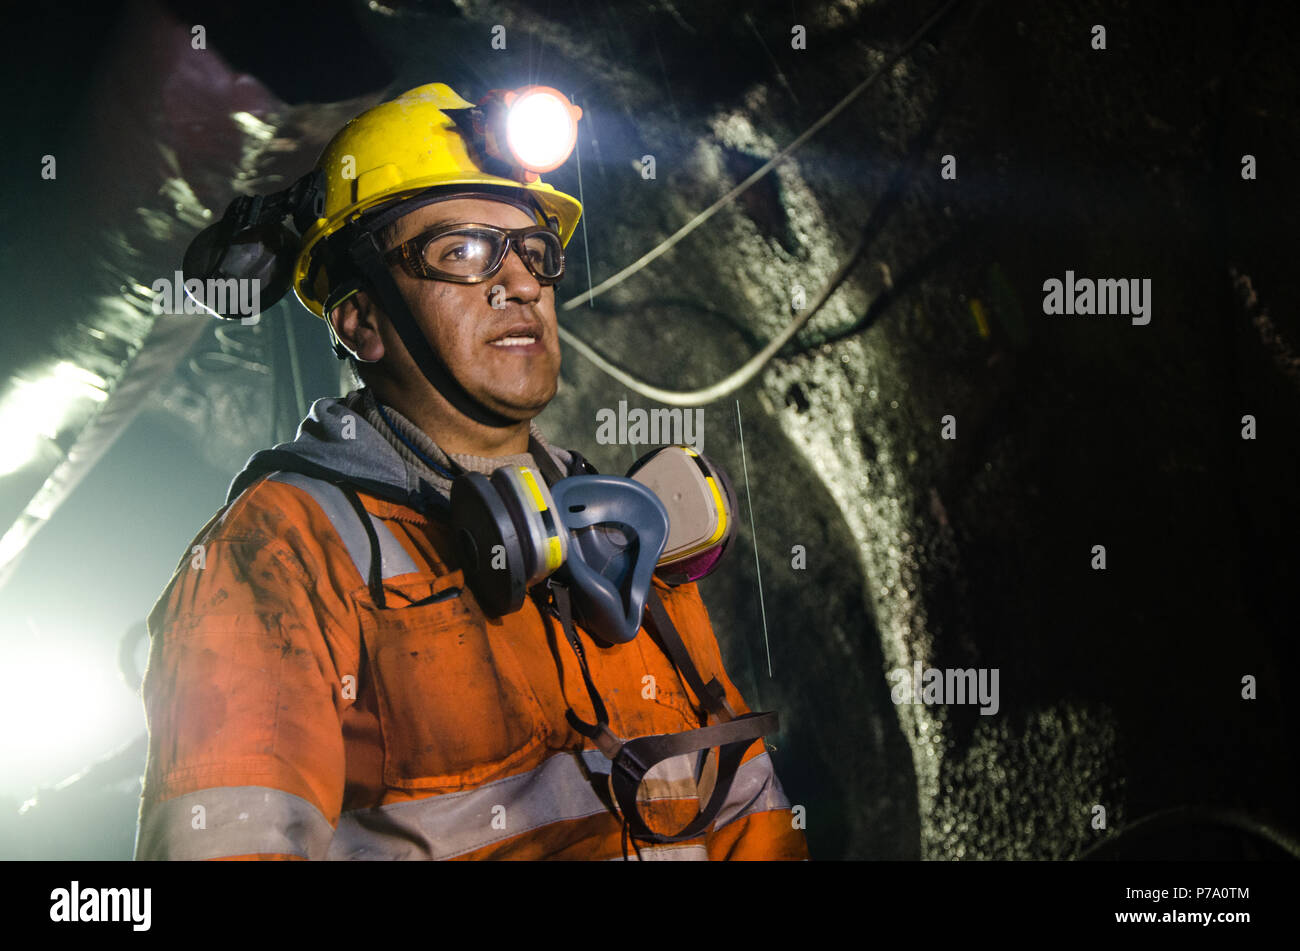 Cerro de Pasco, Peru - July 14th 2017: Miner in the mine. Miner inside the mine well uniformed with a look of confidence. - Stock Image